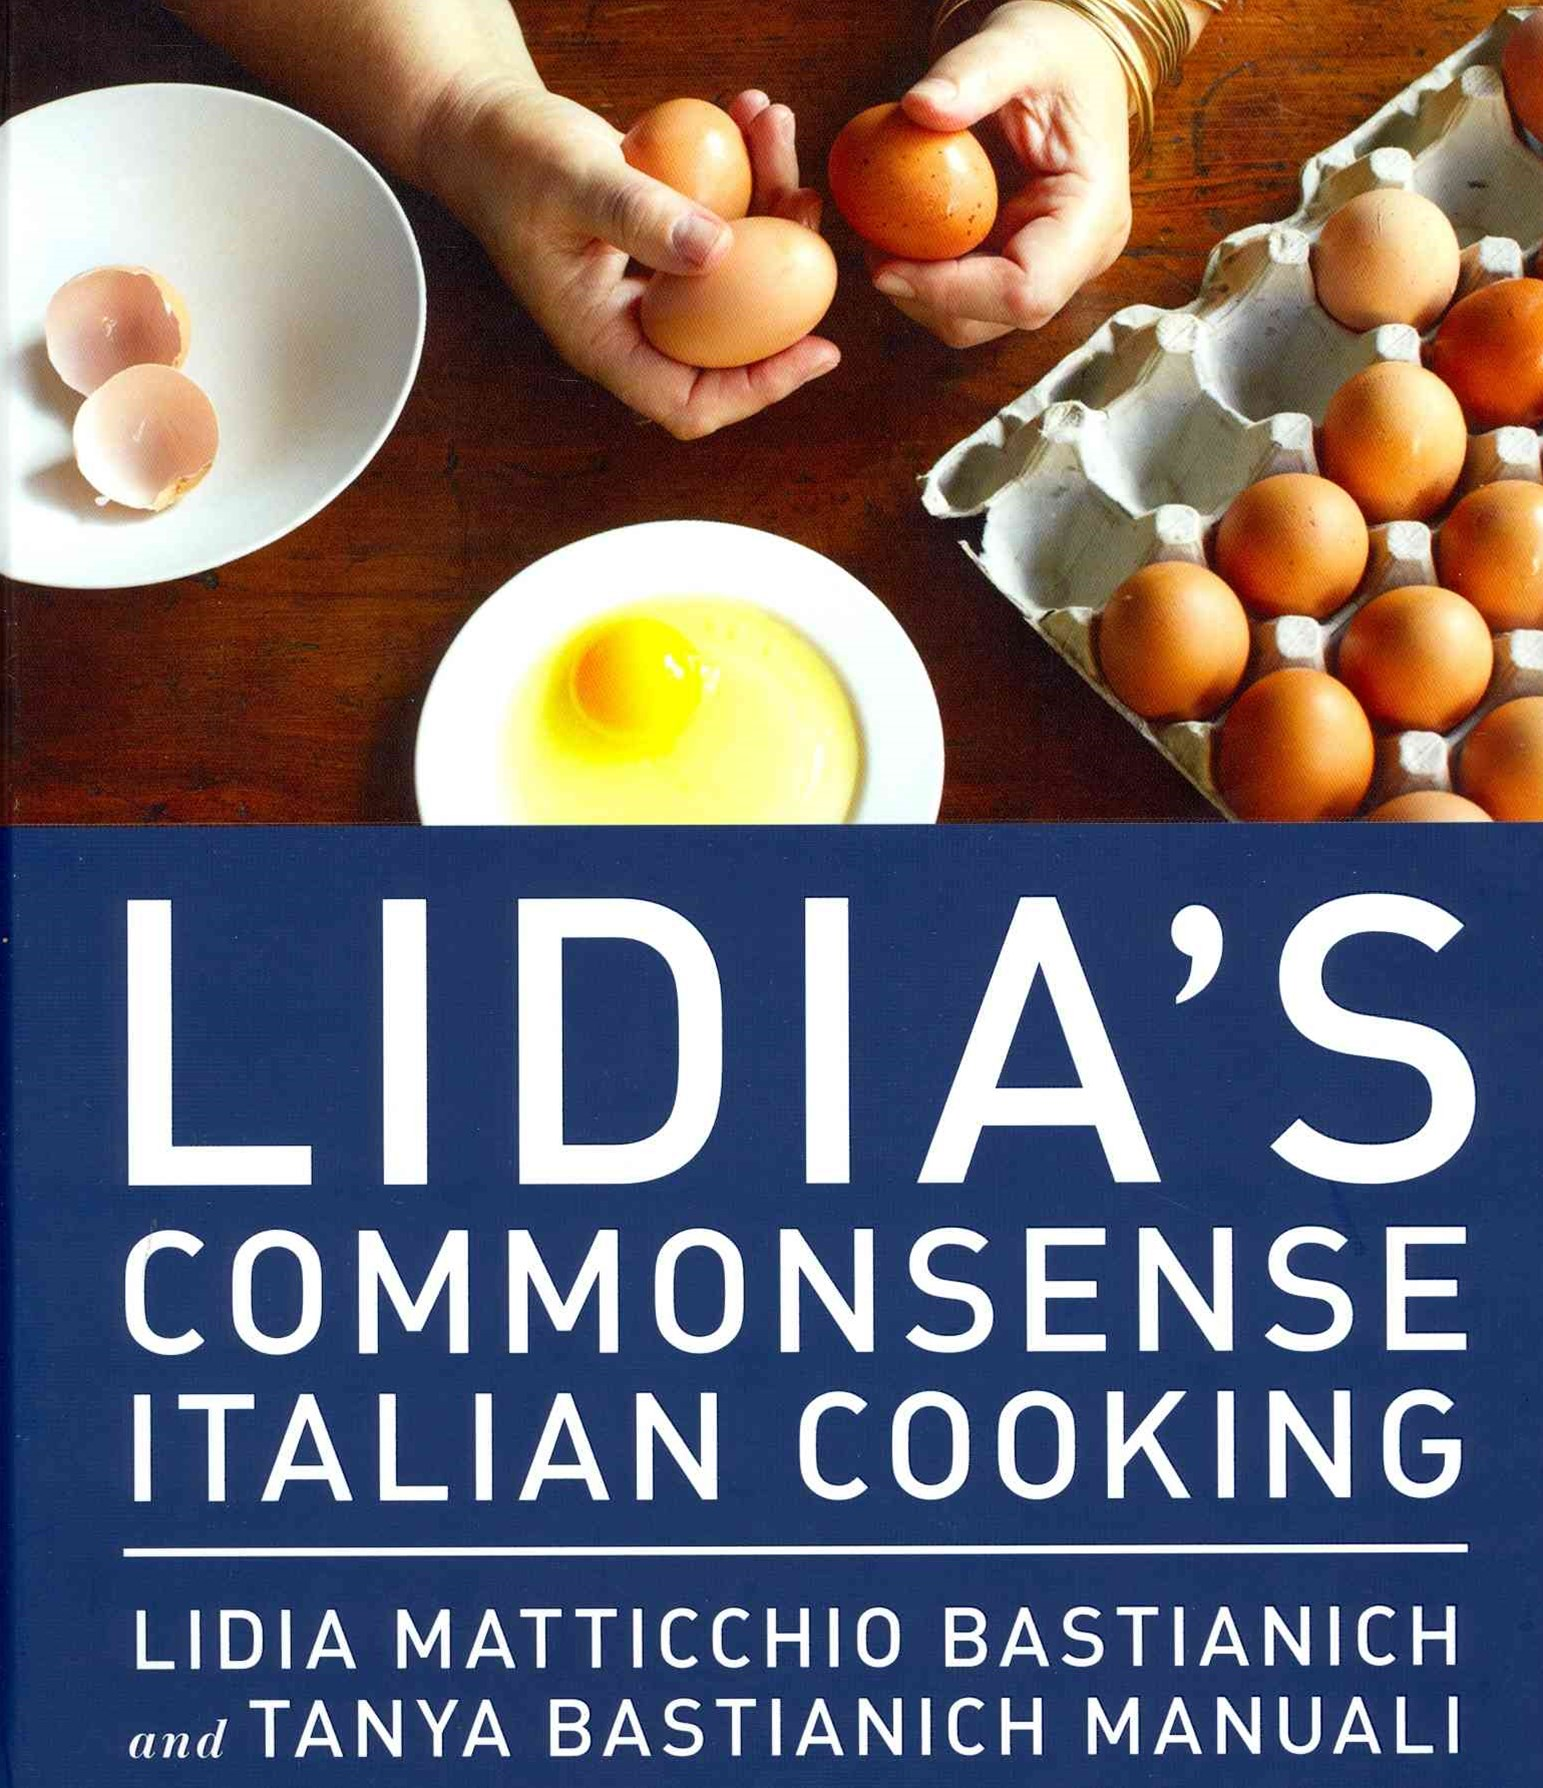 Lidia's Commonsense Italian Cooking